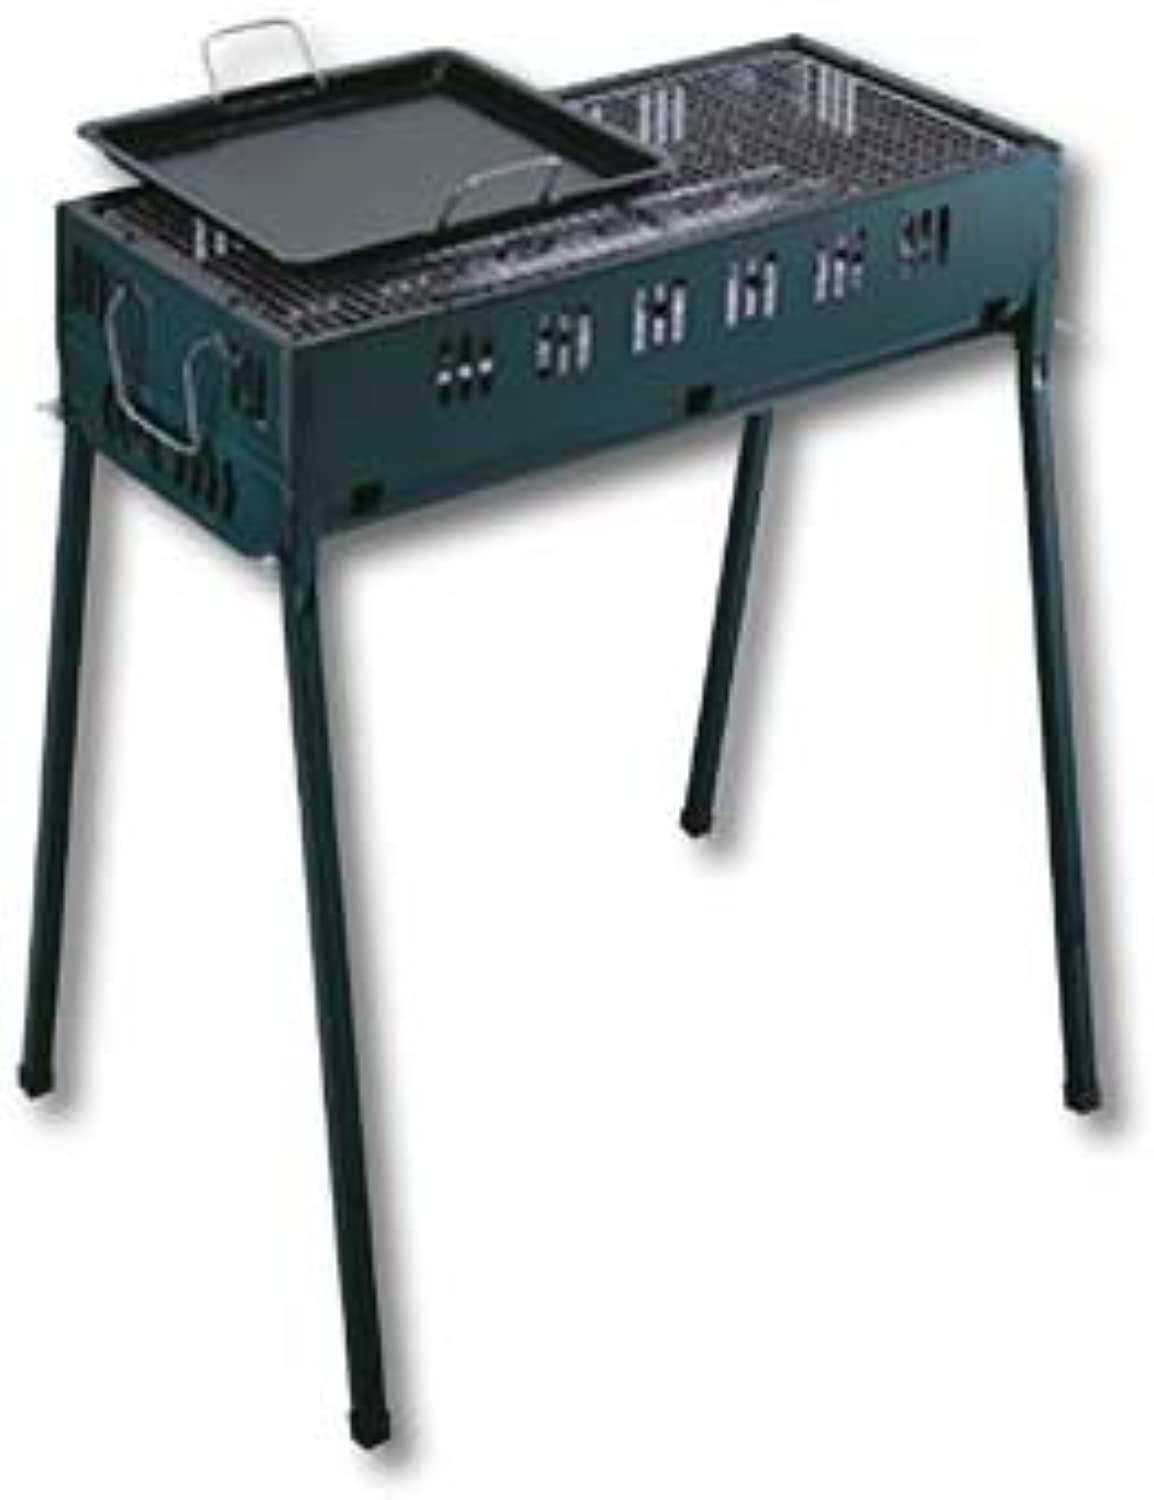 Captain stag barbecue stove BBQ Applause 650 Twin [5  for 6 people] M6425